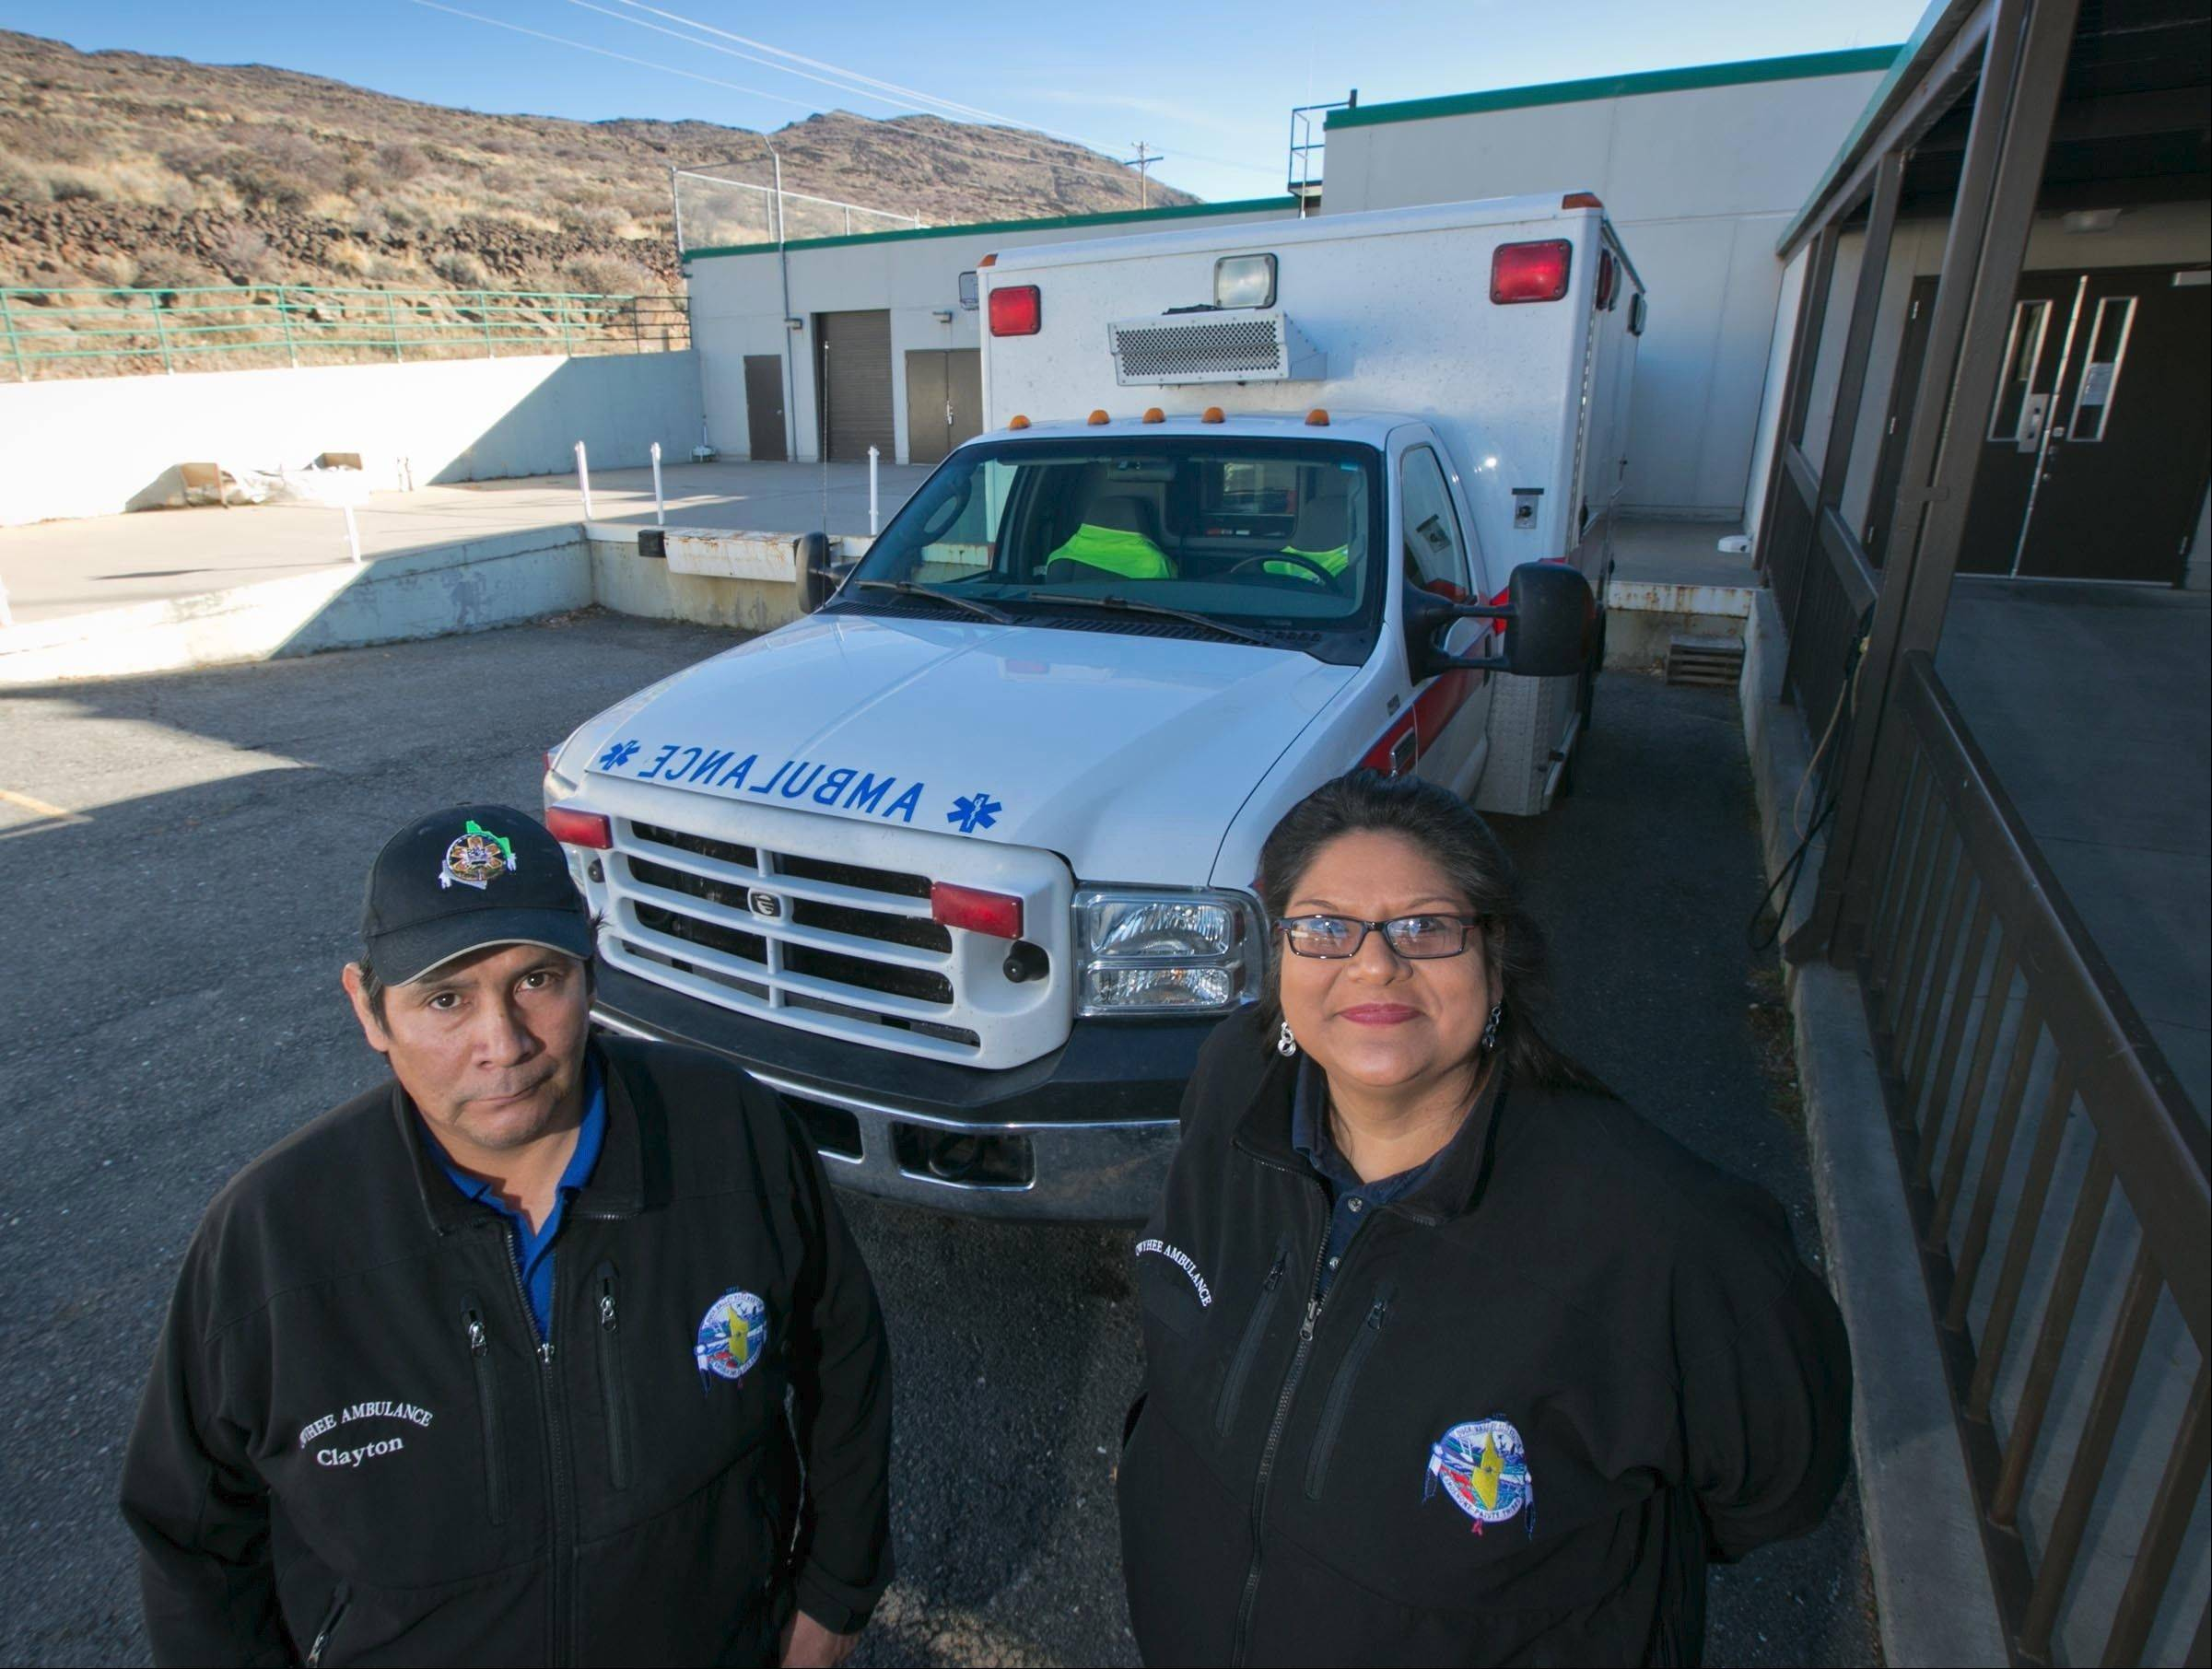 Clayton Thomas, left, and Andrea Astarloa, EMTs at the Duck Valley Indian Reservation in Owyhee, Nev. The tribes who live at Duck Valley are part of hundreds of tribes owed an estimated $2 billion by the federal government for contract support costs. Despite two U.S. Supreme Court rulings in the tribes' favor, government officials have settled less than one percent of the claims.